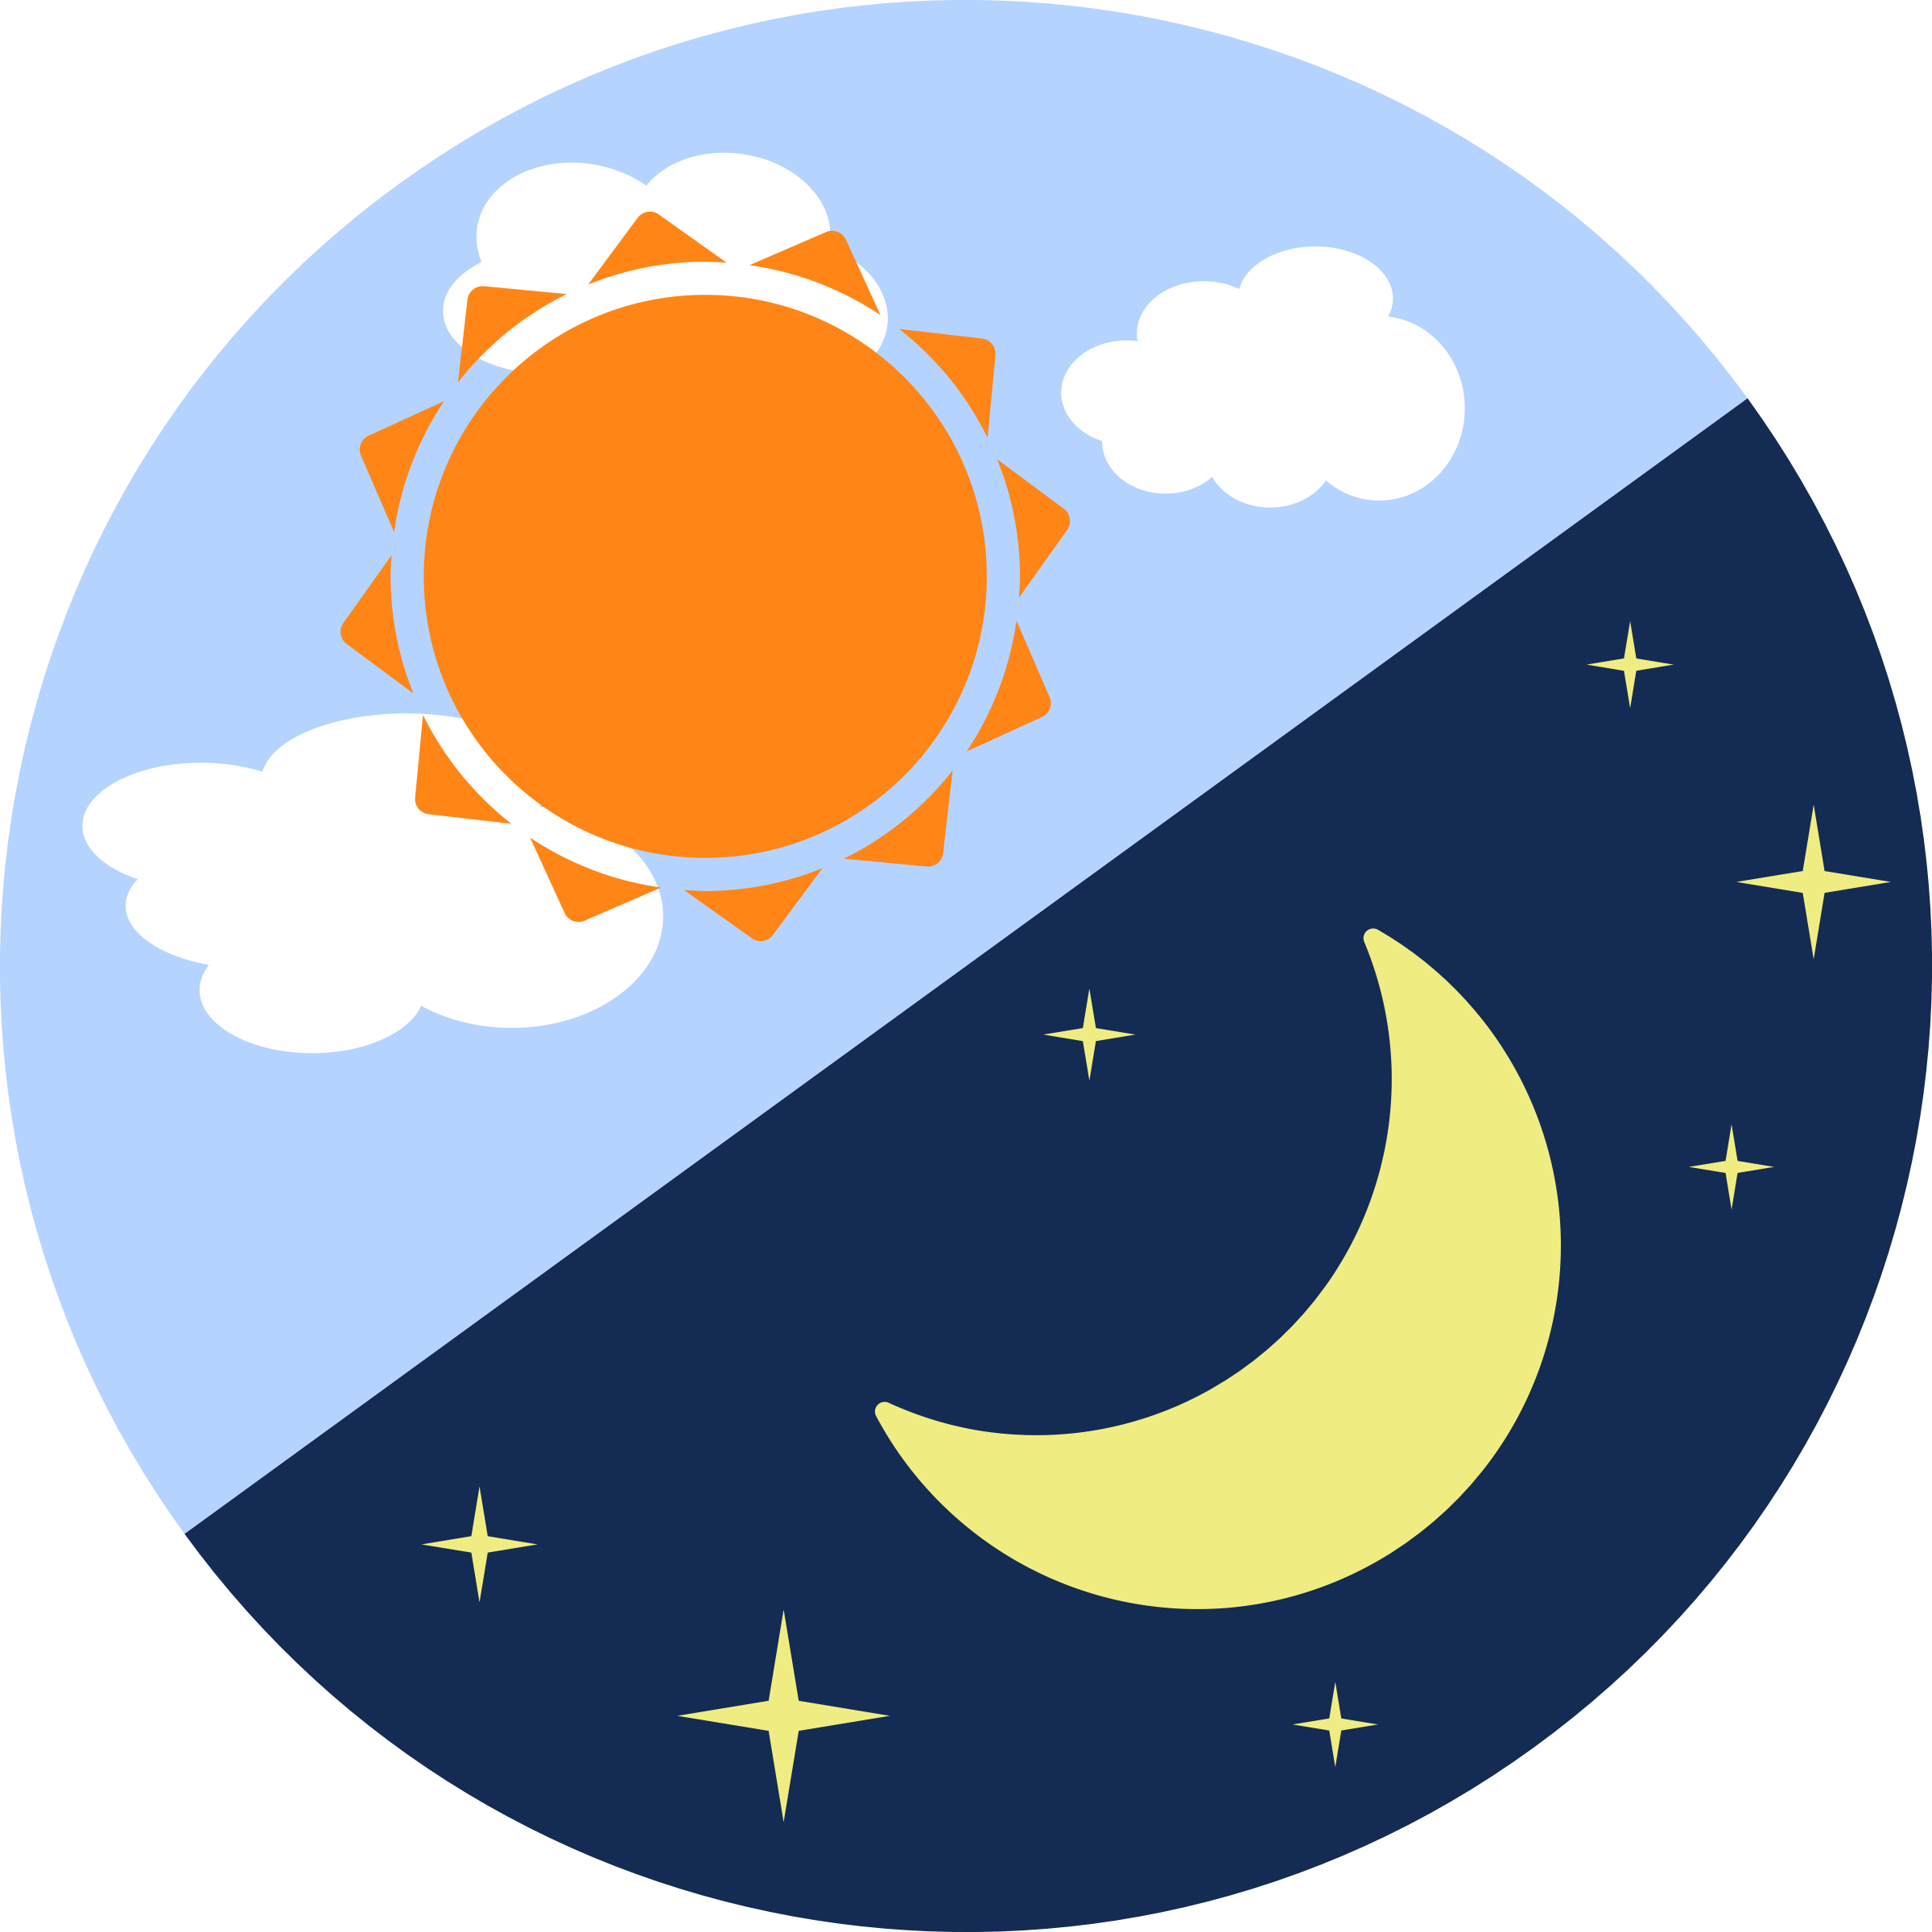 Lunar clipart celestial PVE ThePurge or time! to